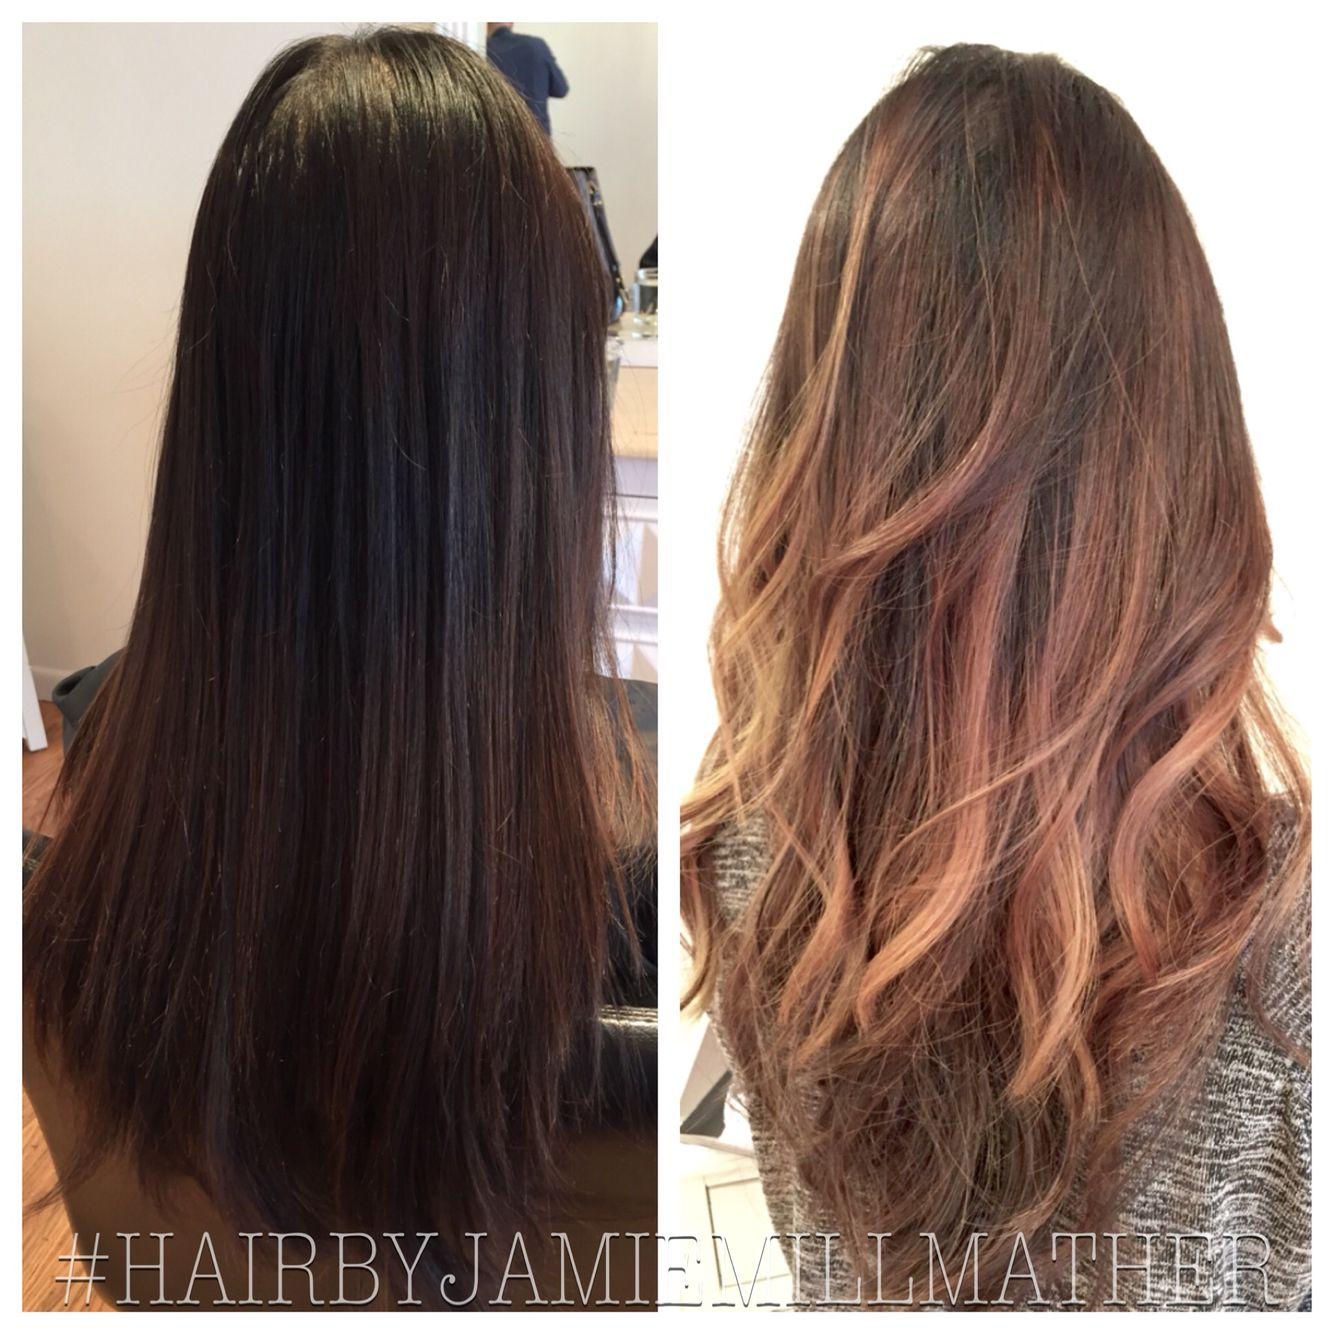 Long Hairstyles And Color Classy Red Hairbefore And Afterlong Layers Haircutbumble And Bumble